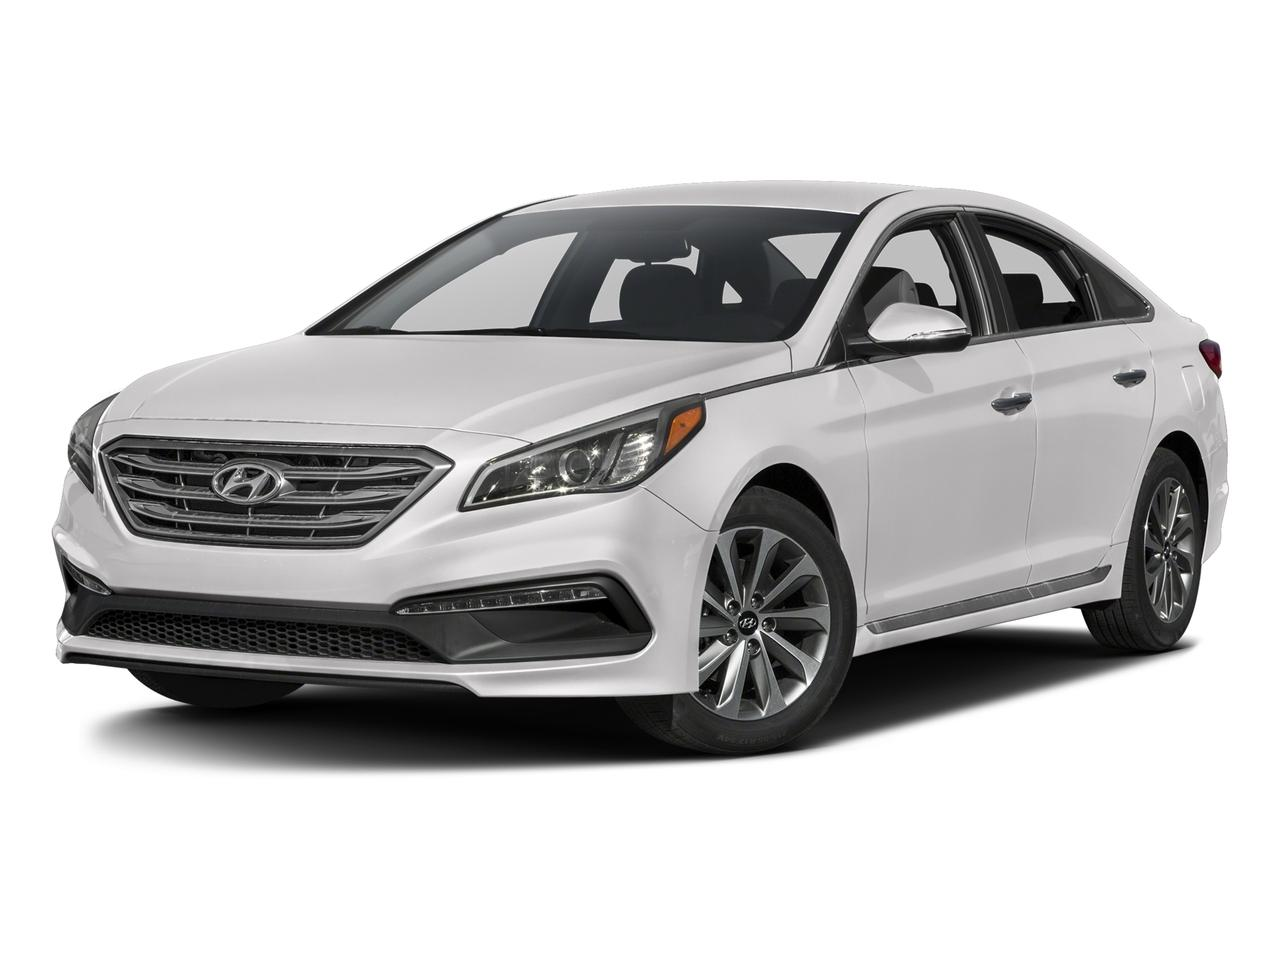 2017 Hyundai Sonata Vehicle Photo in Jenkintown, PA 19046